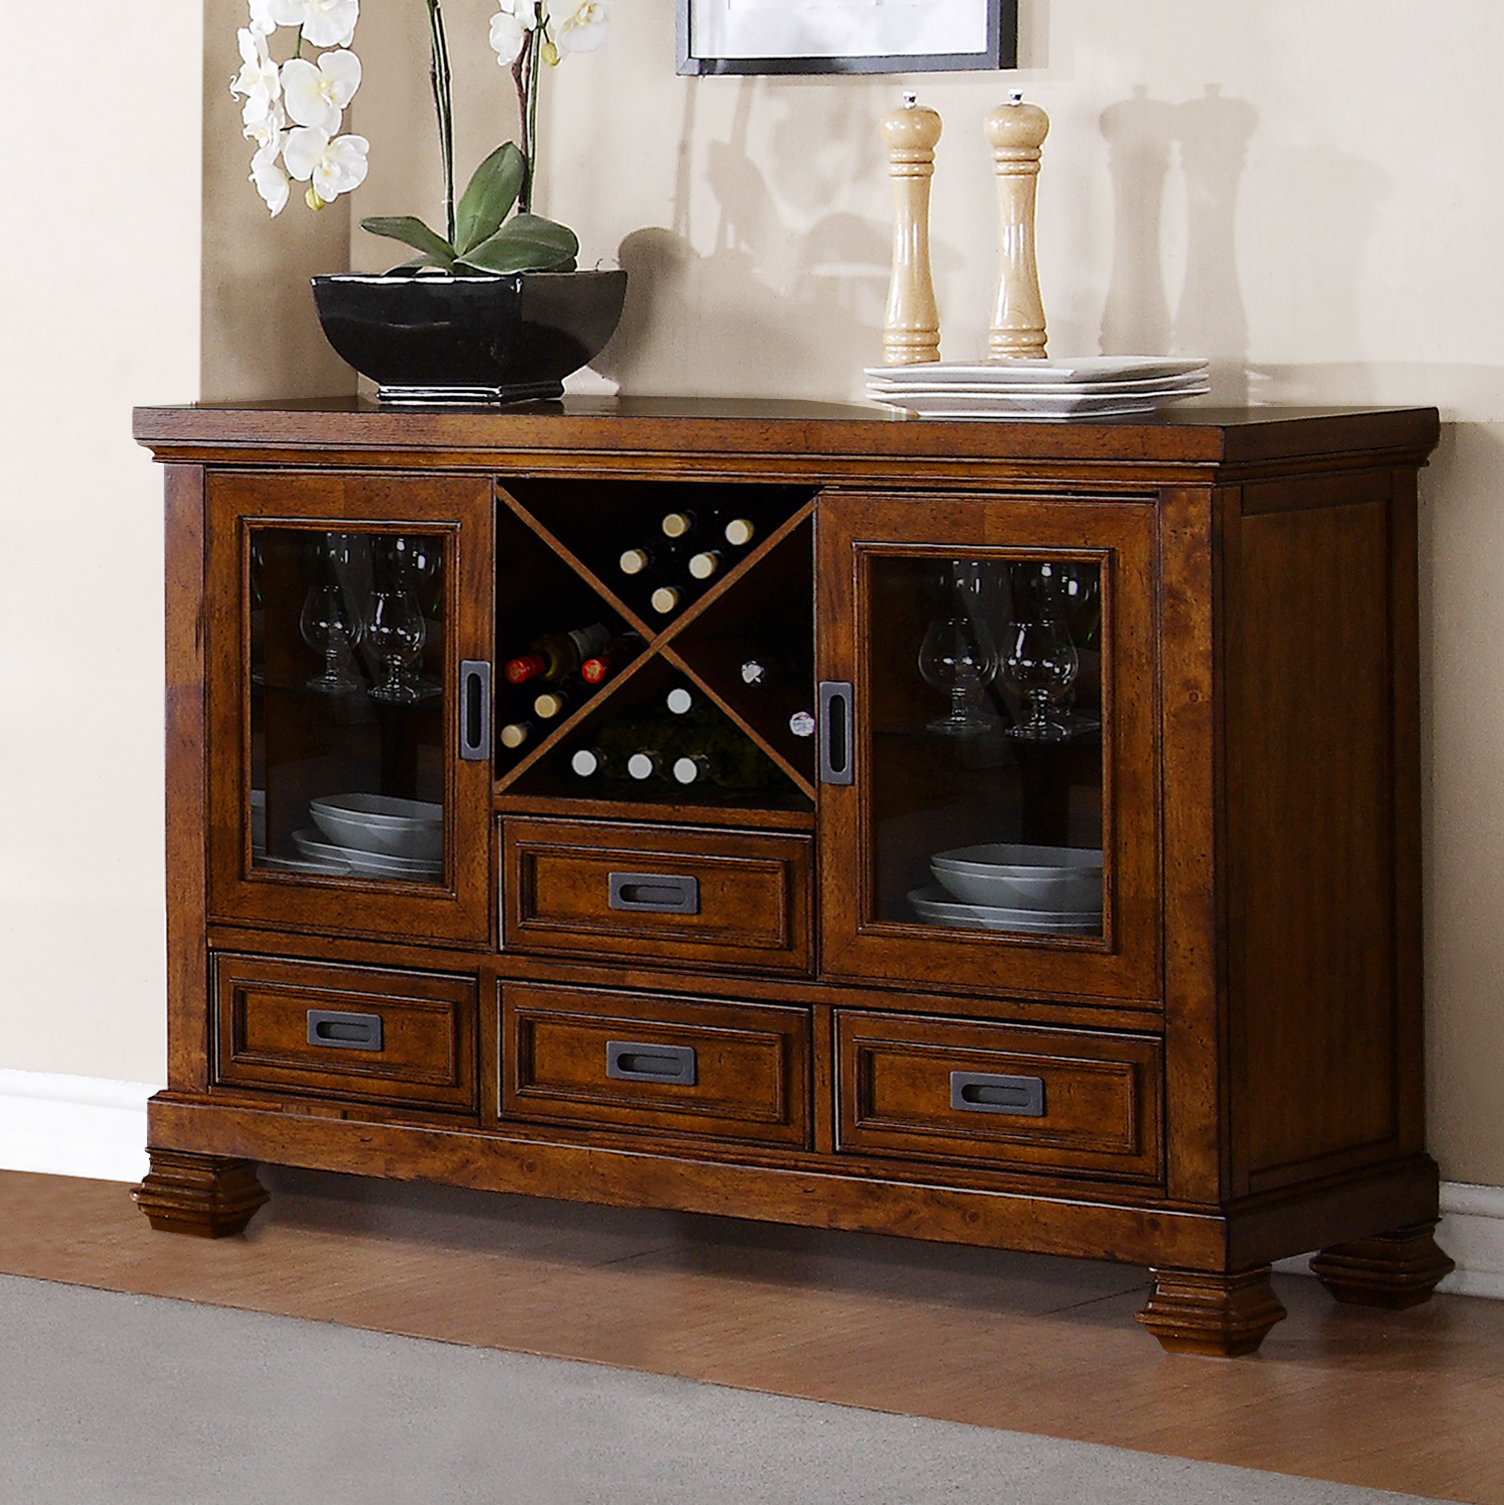 Sideboard With Favorite Sideboards By Wildon Home (View 11 of 20)